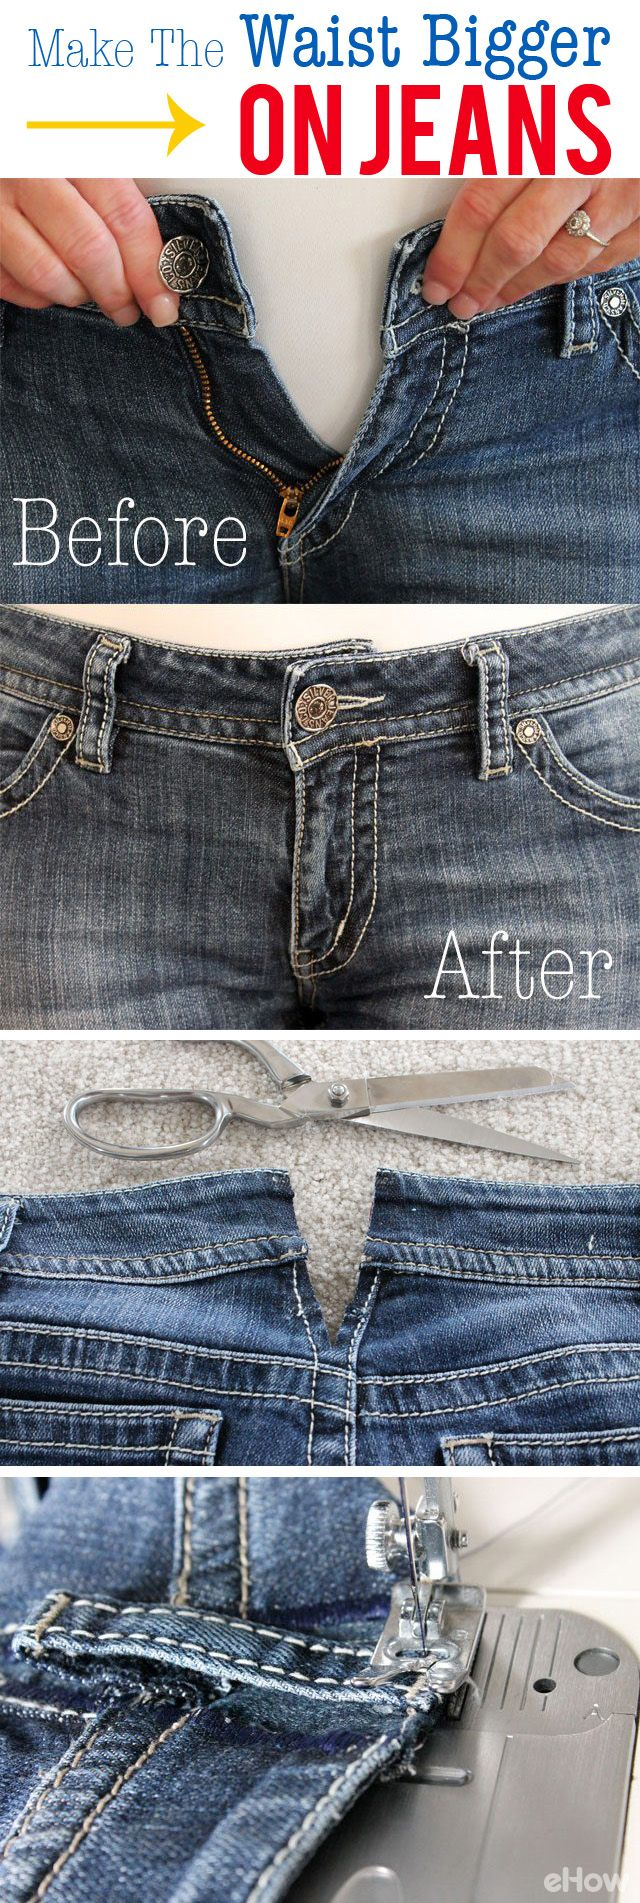 How To Make The Waist Bigger On Jeans Ehow Diy Fashion Sewing For Beginners Easy Sewing